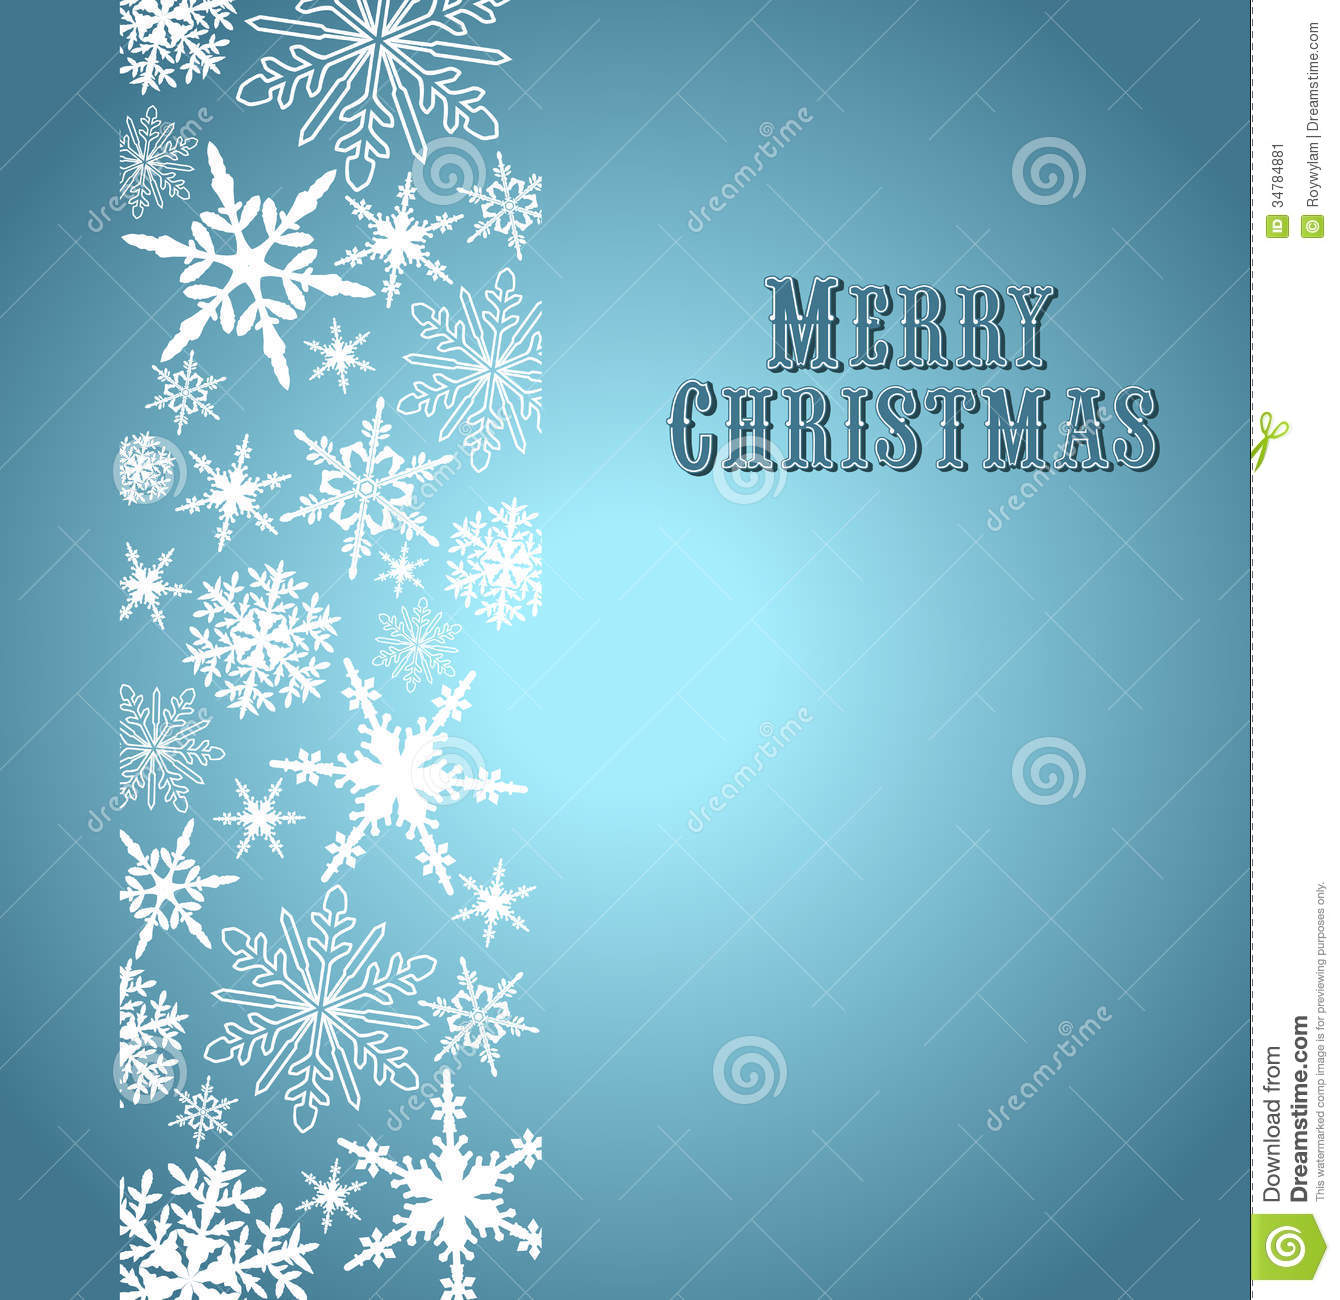 Snowflakes Merry Christmas Card Stock Image - Image: 34784881